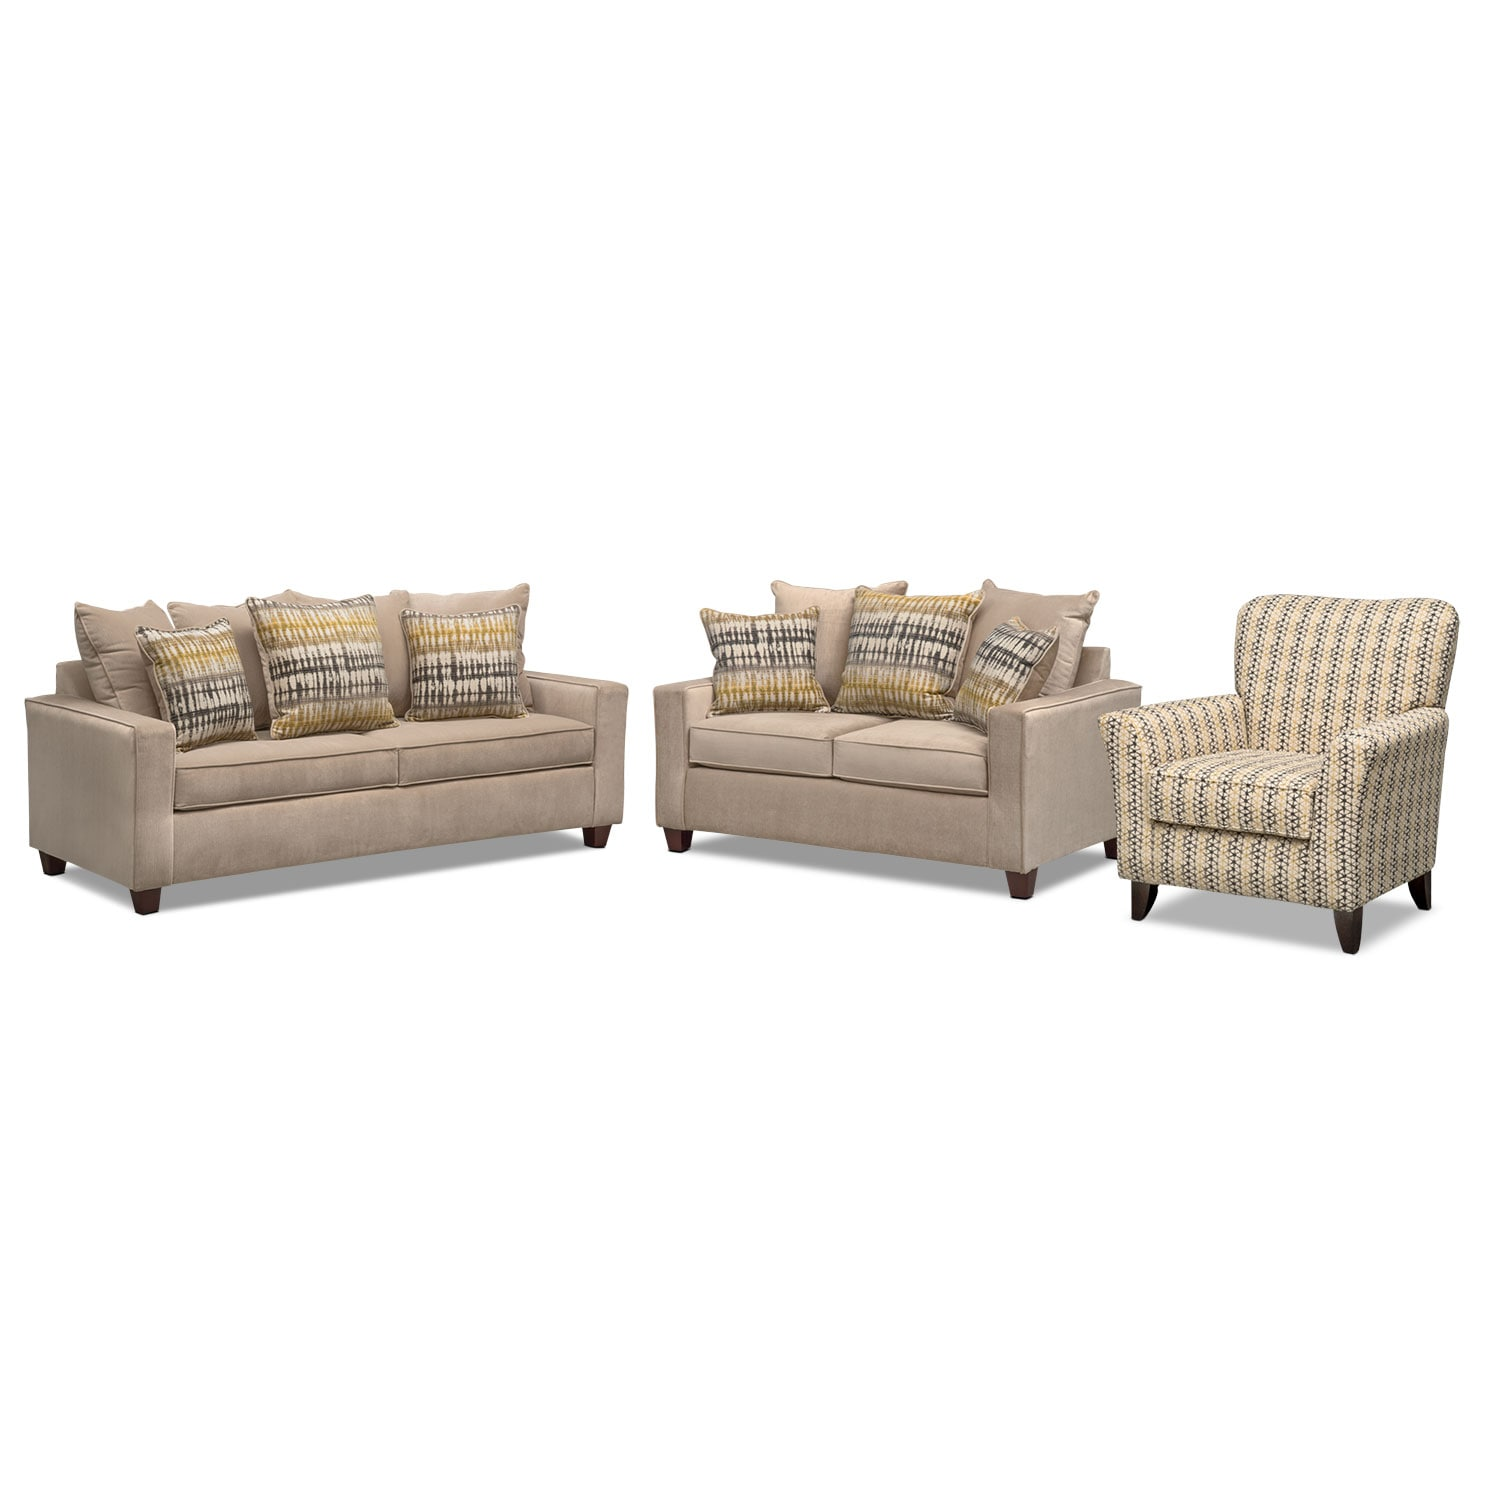 Bryden Sofa, Loveseat and Accent Chair